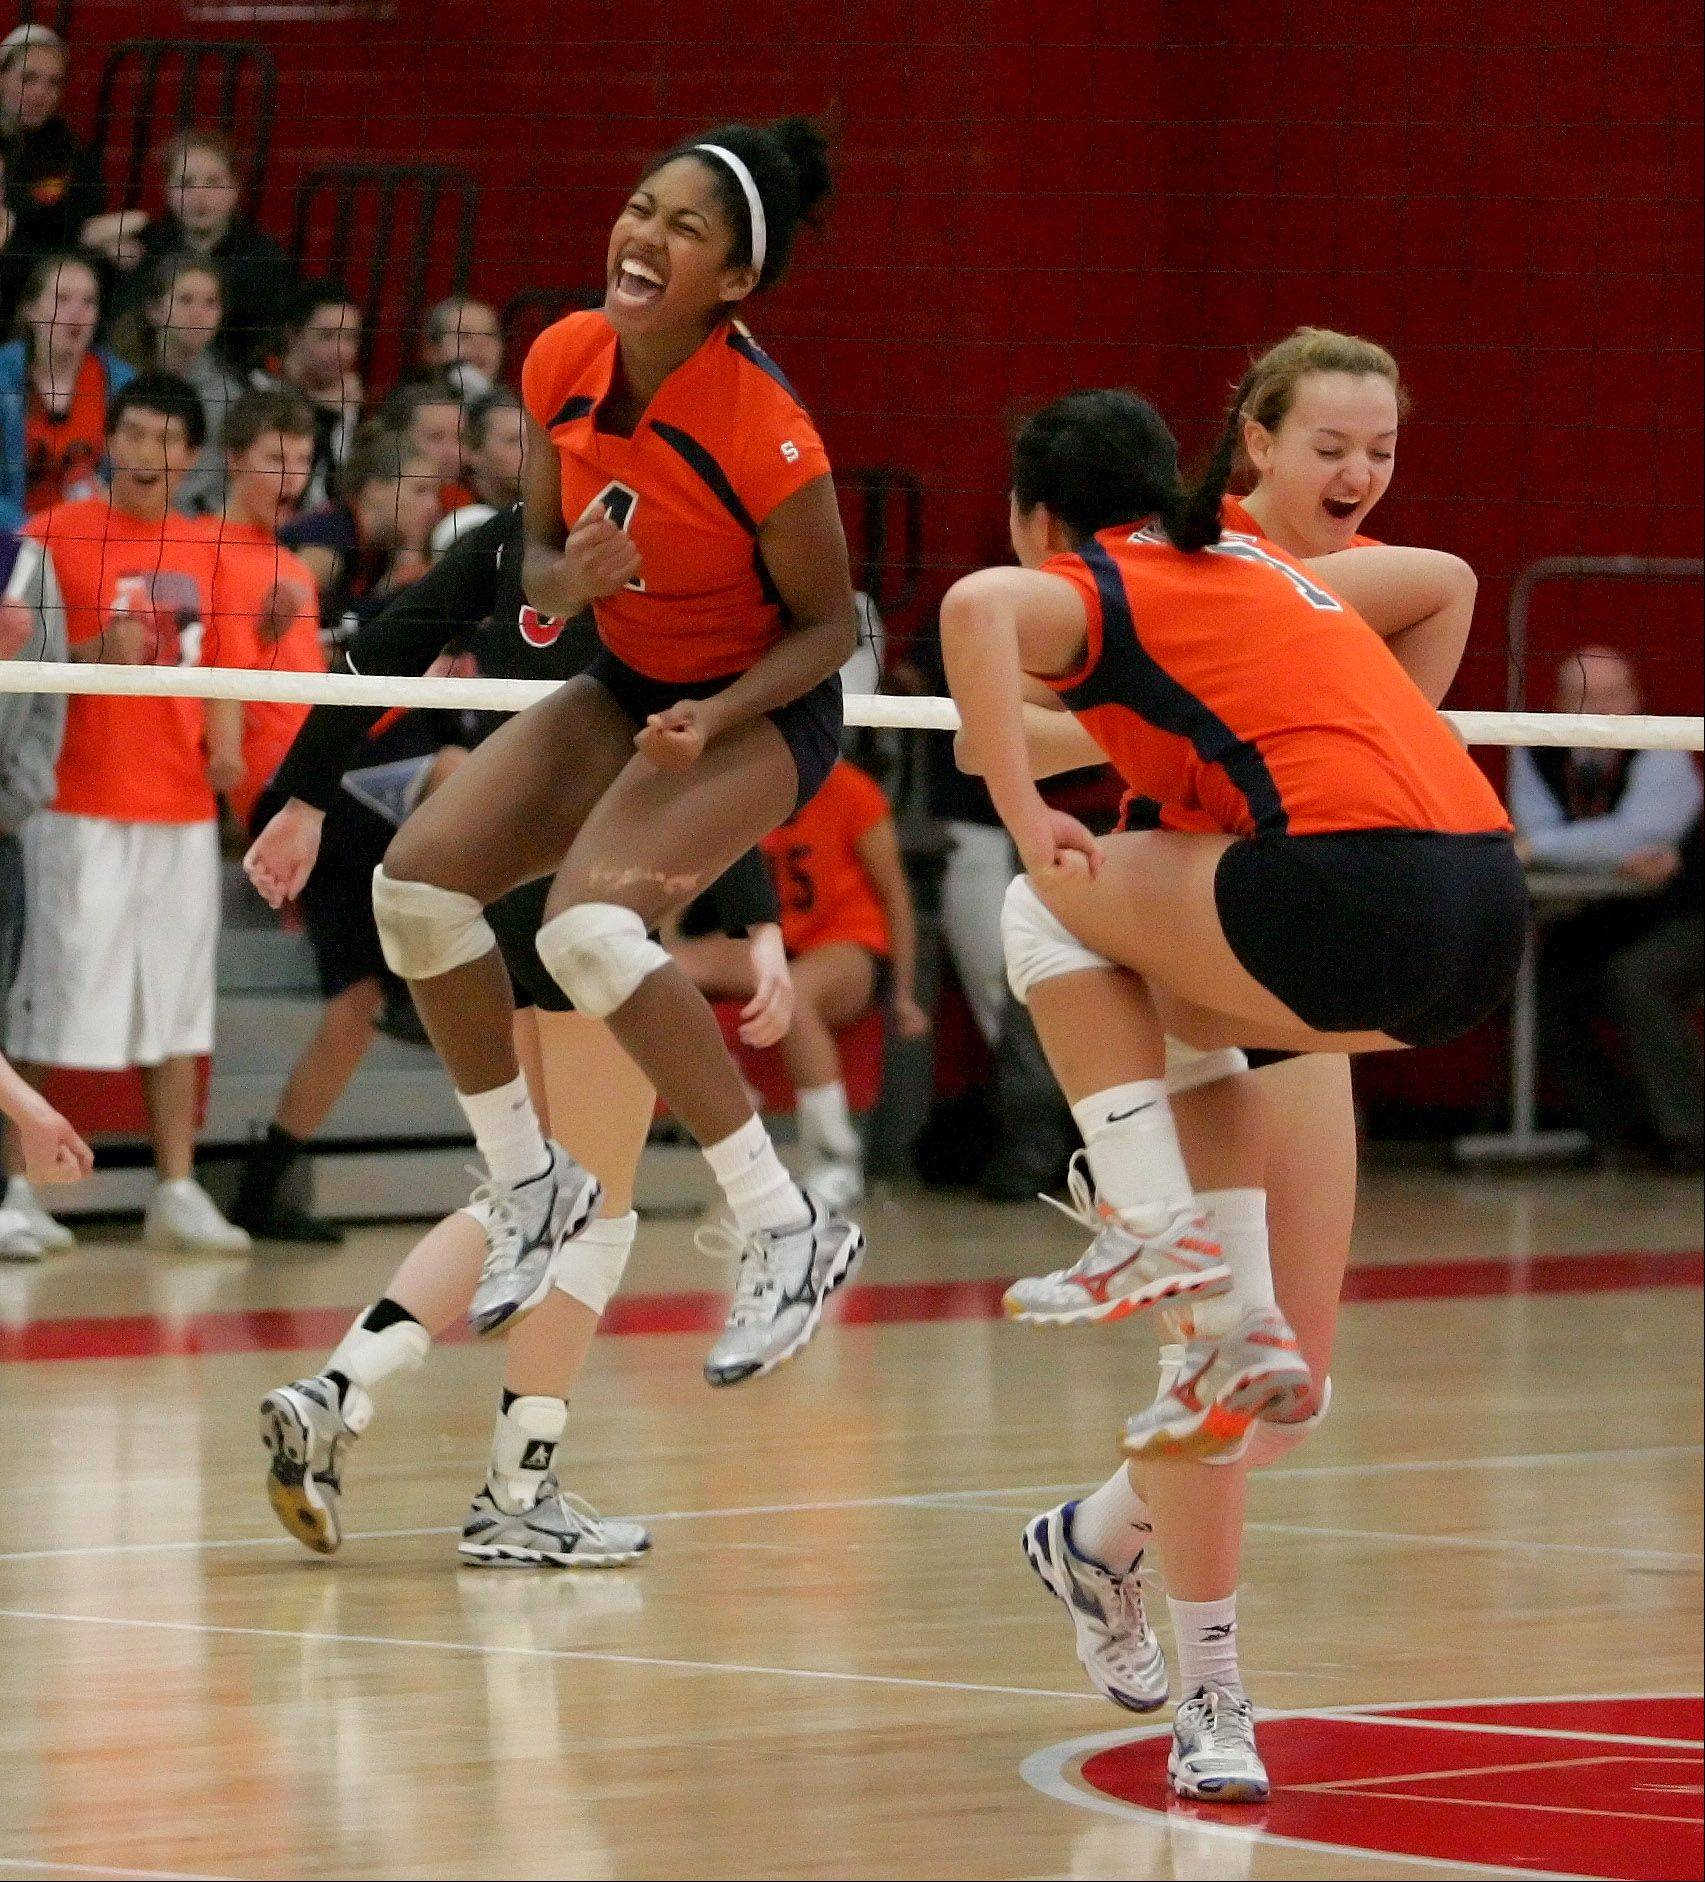 Naperville North's Ashley Crawford, left, and teammates celebrate a point won over Naperville Central in girls volleyball action on Tuesday.